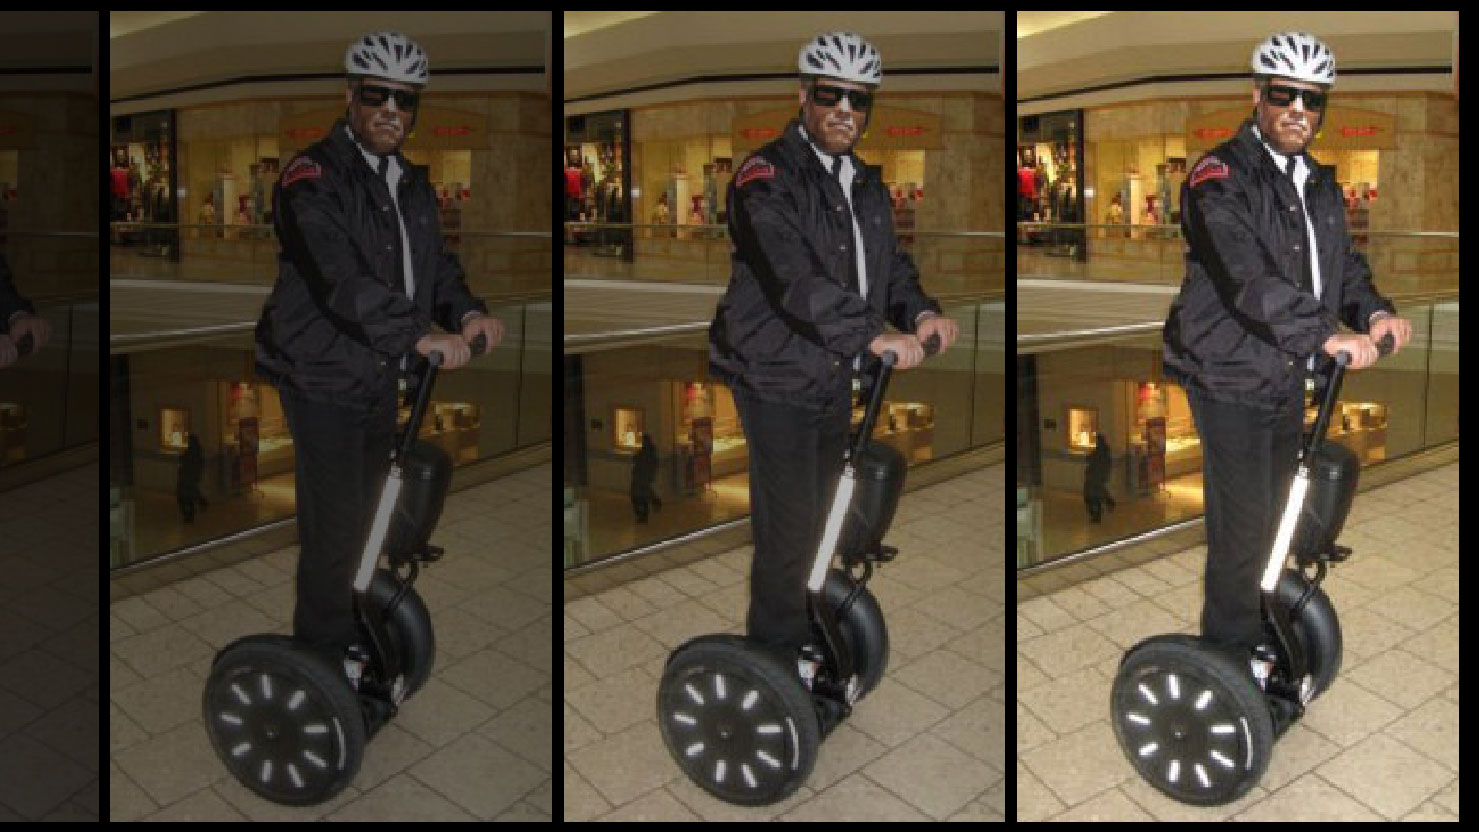 Mall cop fired after bringing gun to work and accidentally shooting other guard in arse